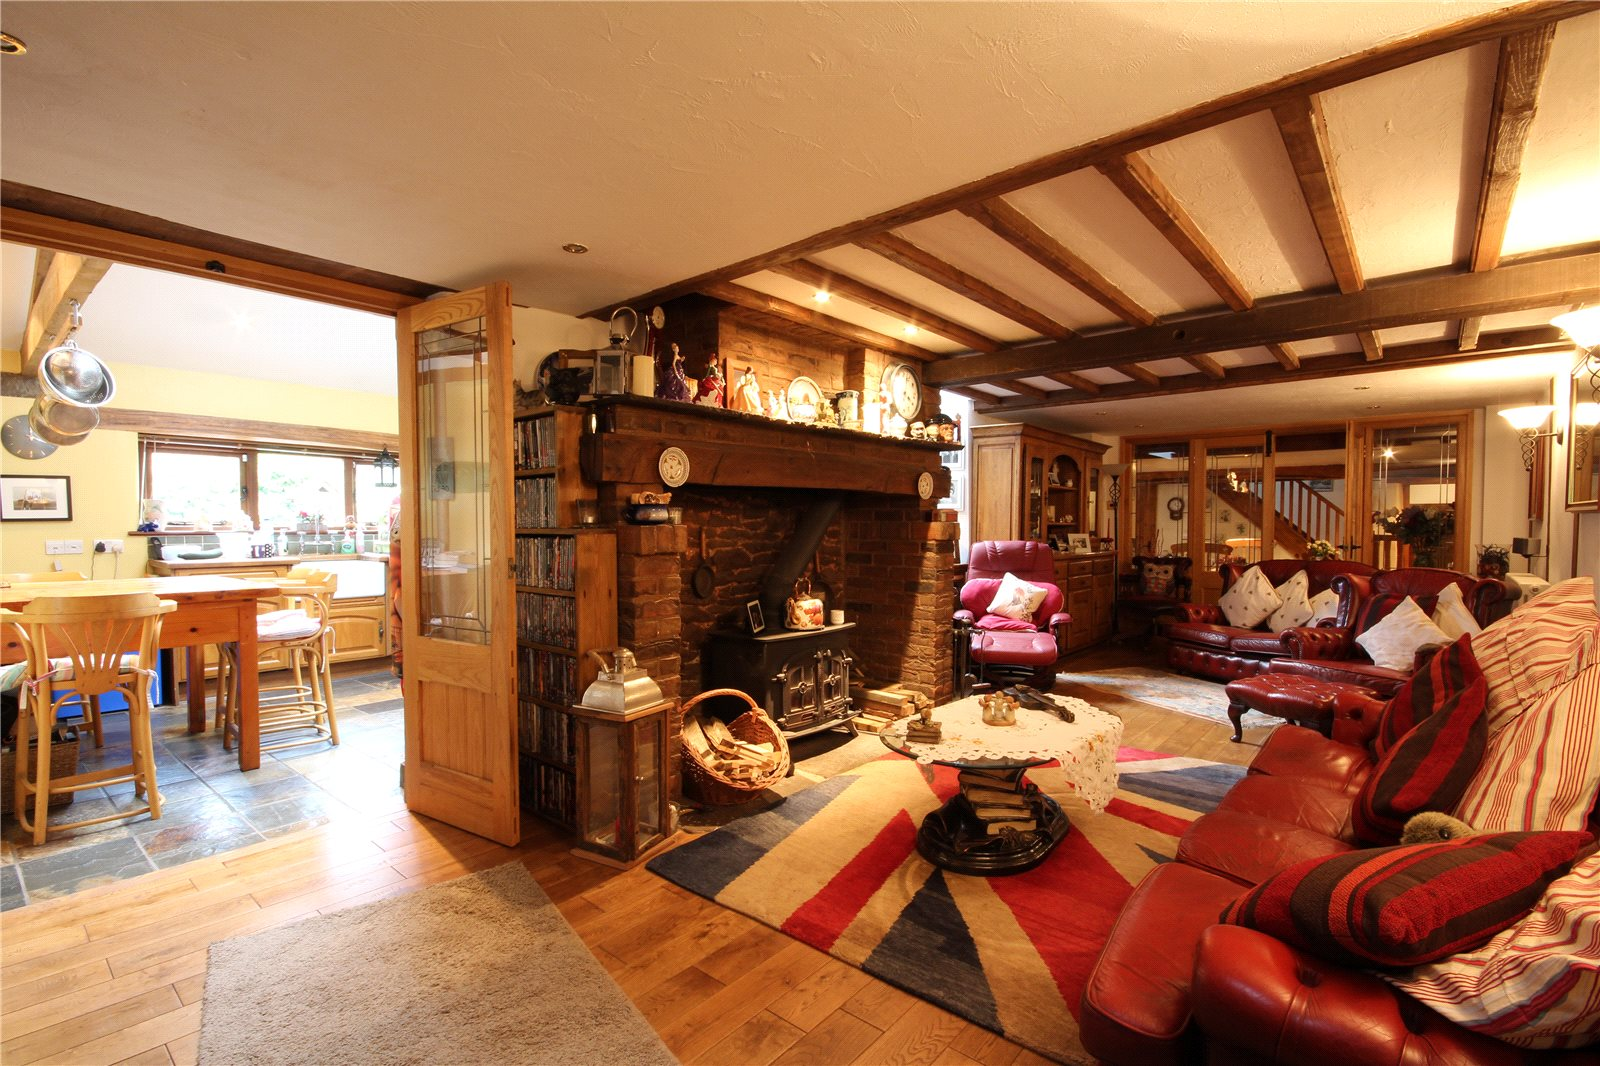 CJHole Downend 4 bedroom Barn Conversion For Sale in ...